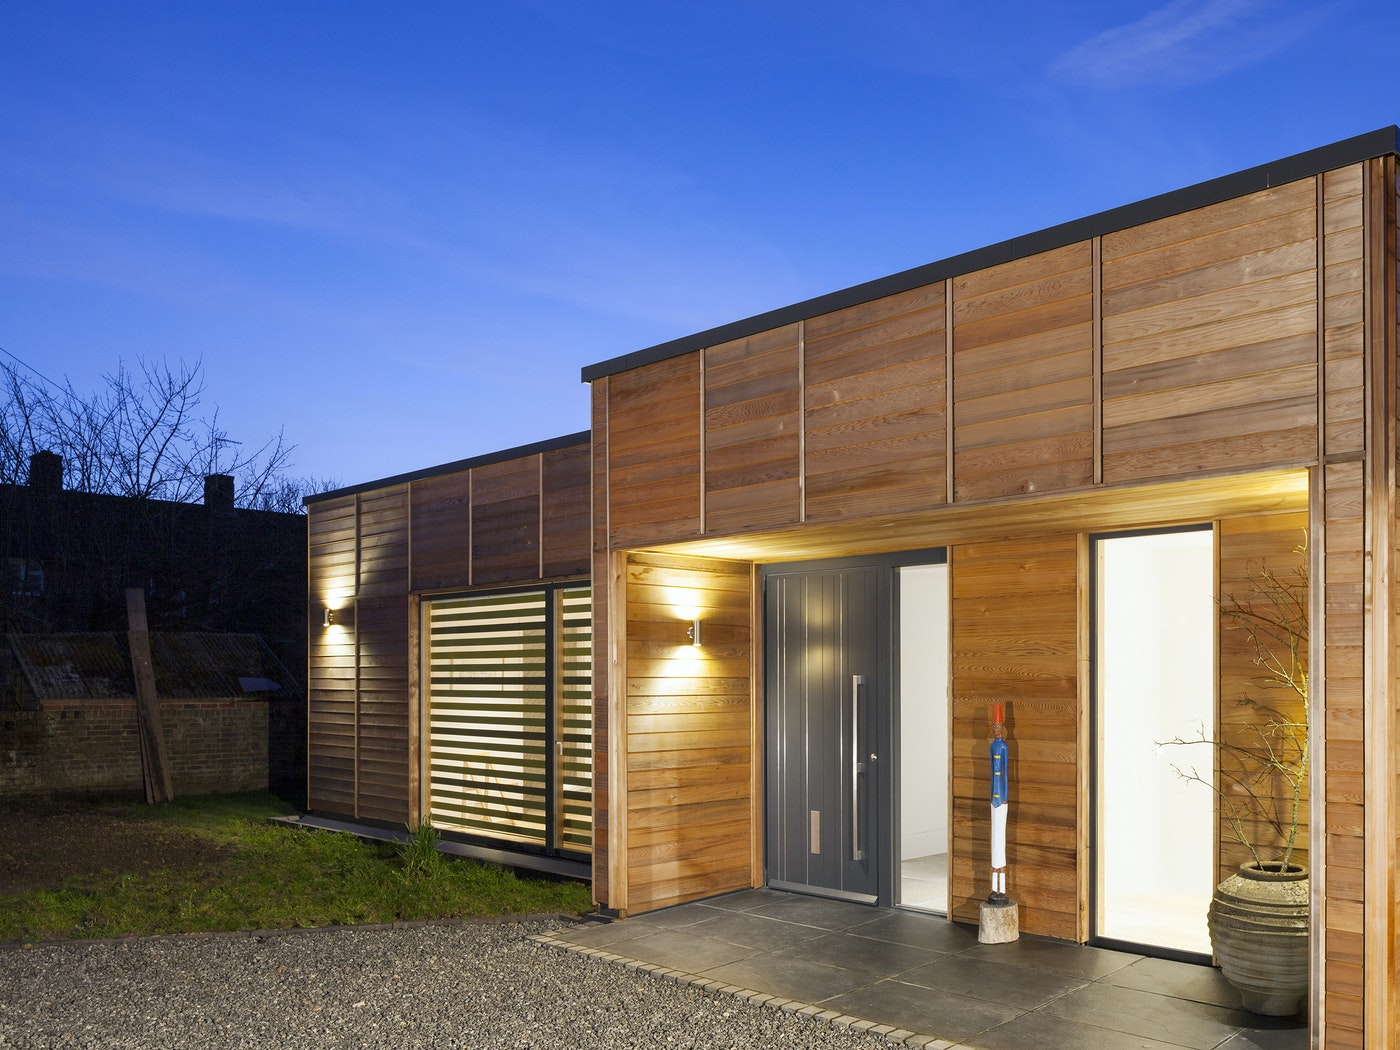 The simple building design works beautifully with the statement grey painted door